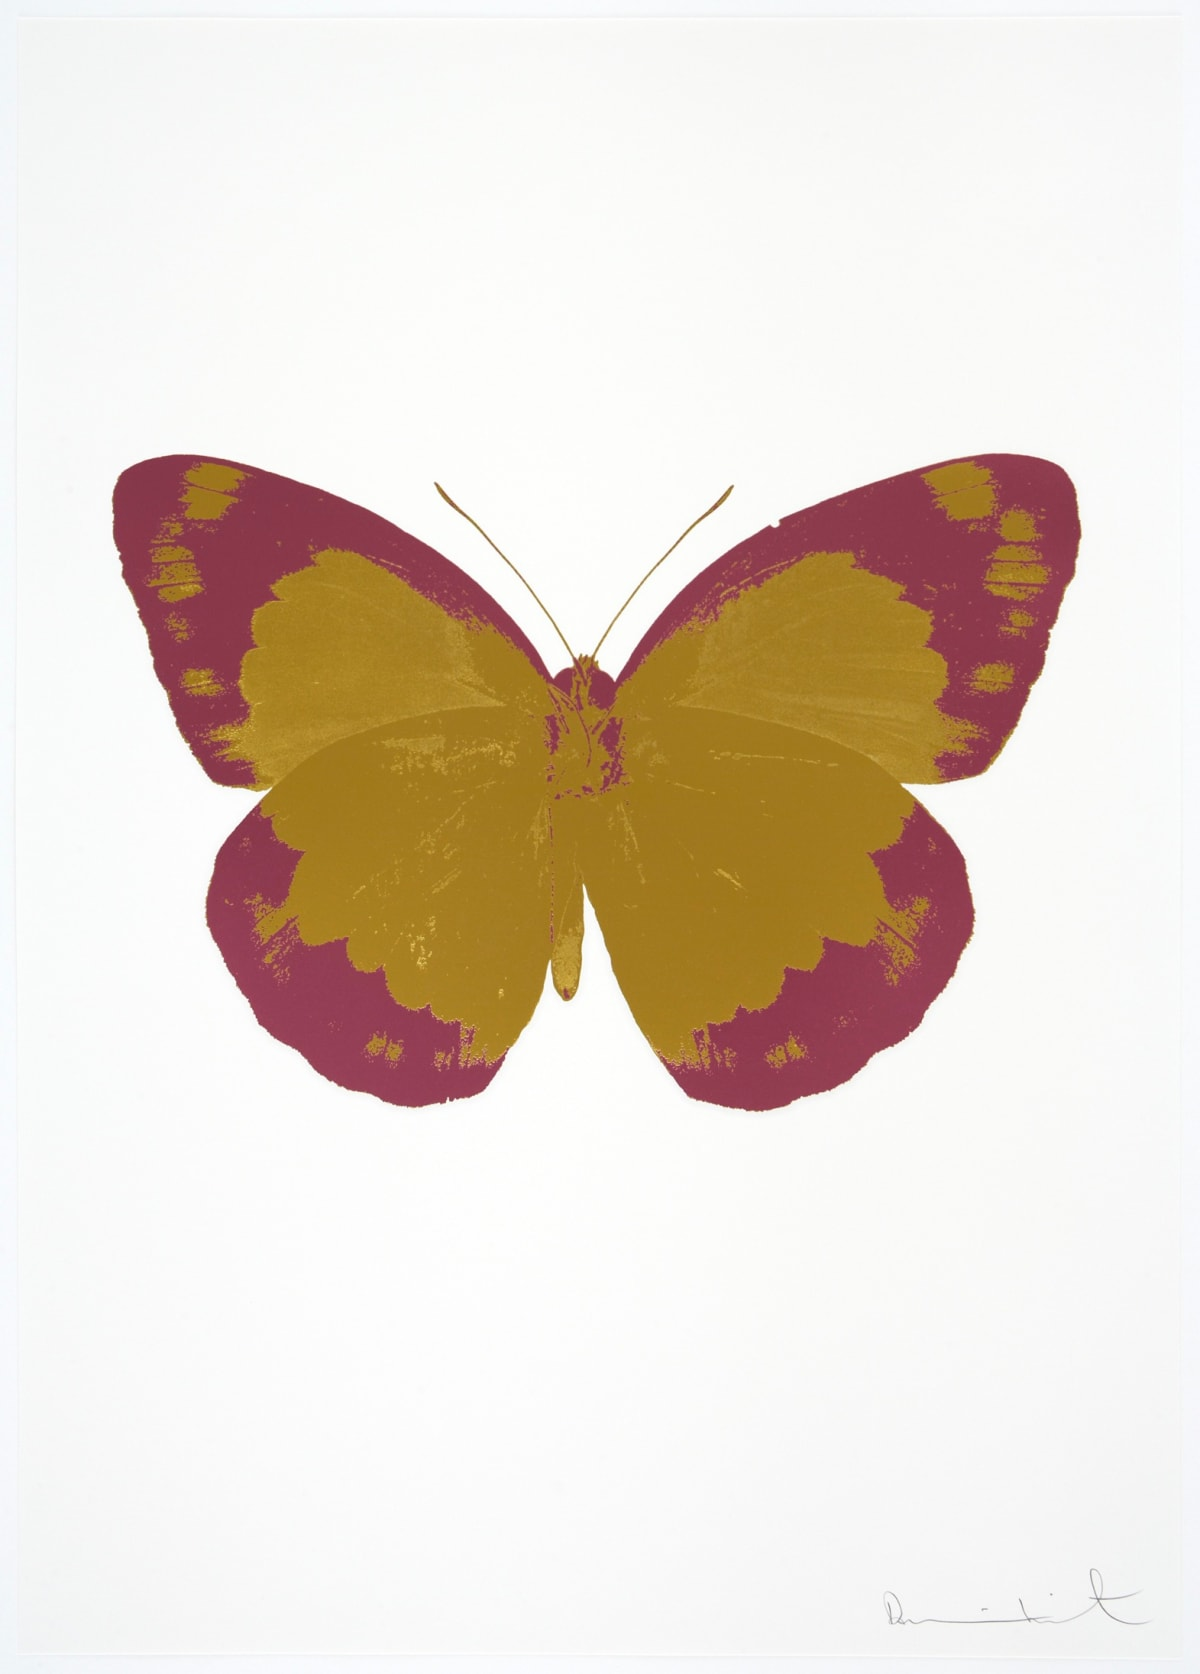 Damien Hirst The Souls II - Oriental Gold/ Loganberry Pink/Blind Impression, 2010 2 colour foil block on 300gsm Arches 88 archival paper. Signed and numbered. Published by Paul Stolper and Other Criteria 72 x 51cm OC7841 / 658-24 Edition of 15